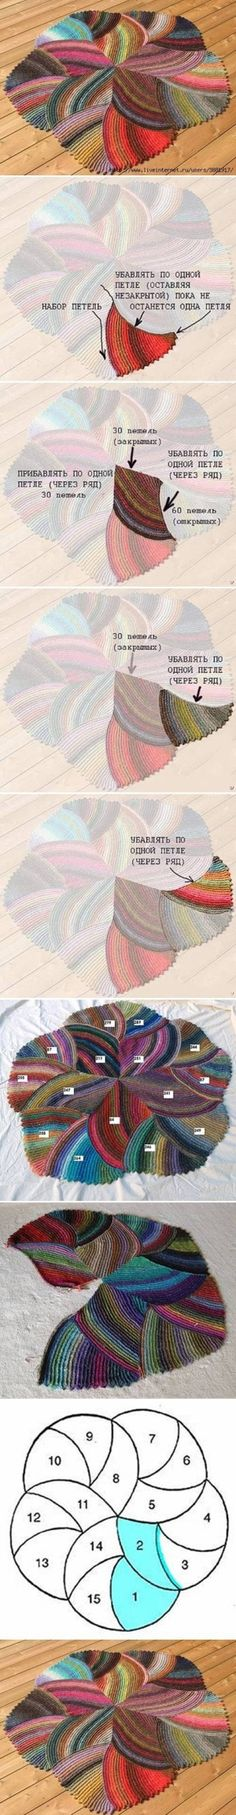 DIY Melange Rug - Knit rug for crochet inspiration Yarn Projects, Knitting Projects, Crochet Projects, Knitting Stitches, Knitting Patterns, Crochet Patterns, Crochet Diy, Crochet Home, Crochet Rugs